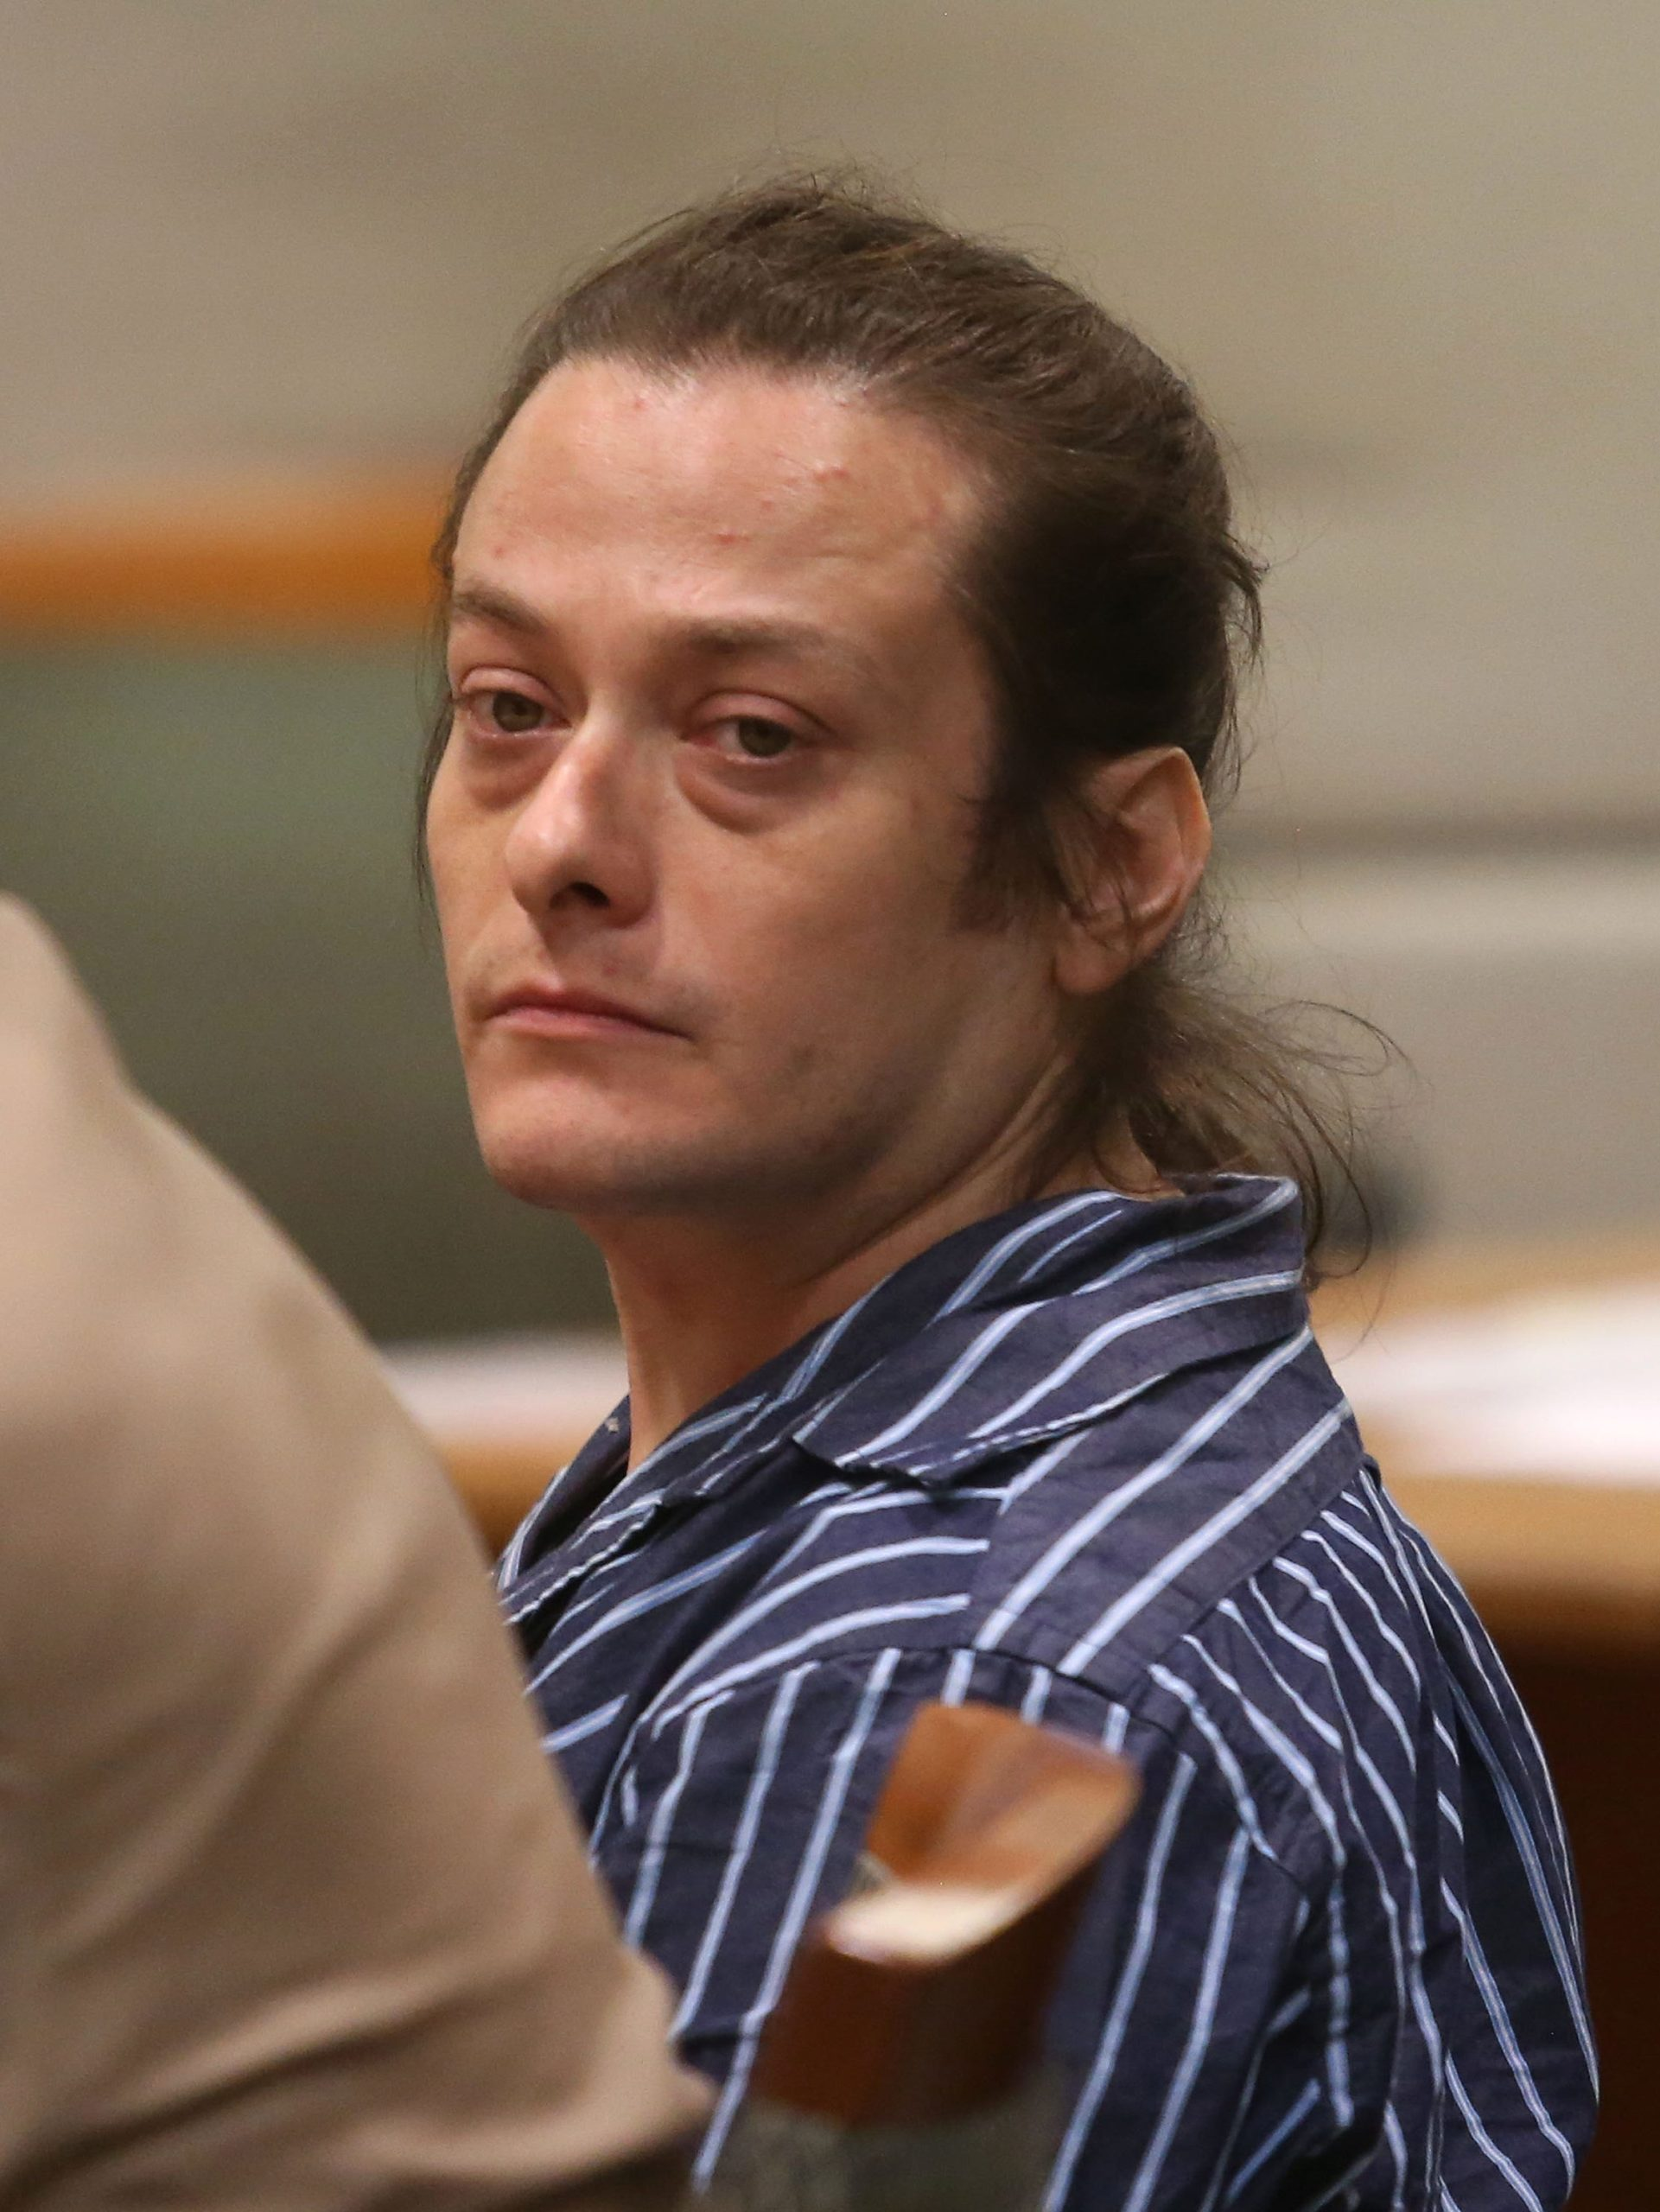 Terminator 2 Star Edward Furlong Where Is He And What Happened?